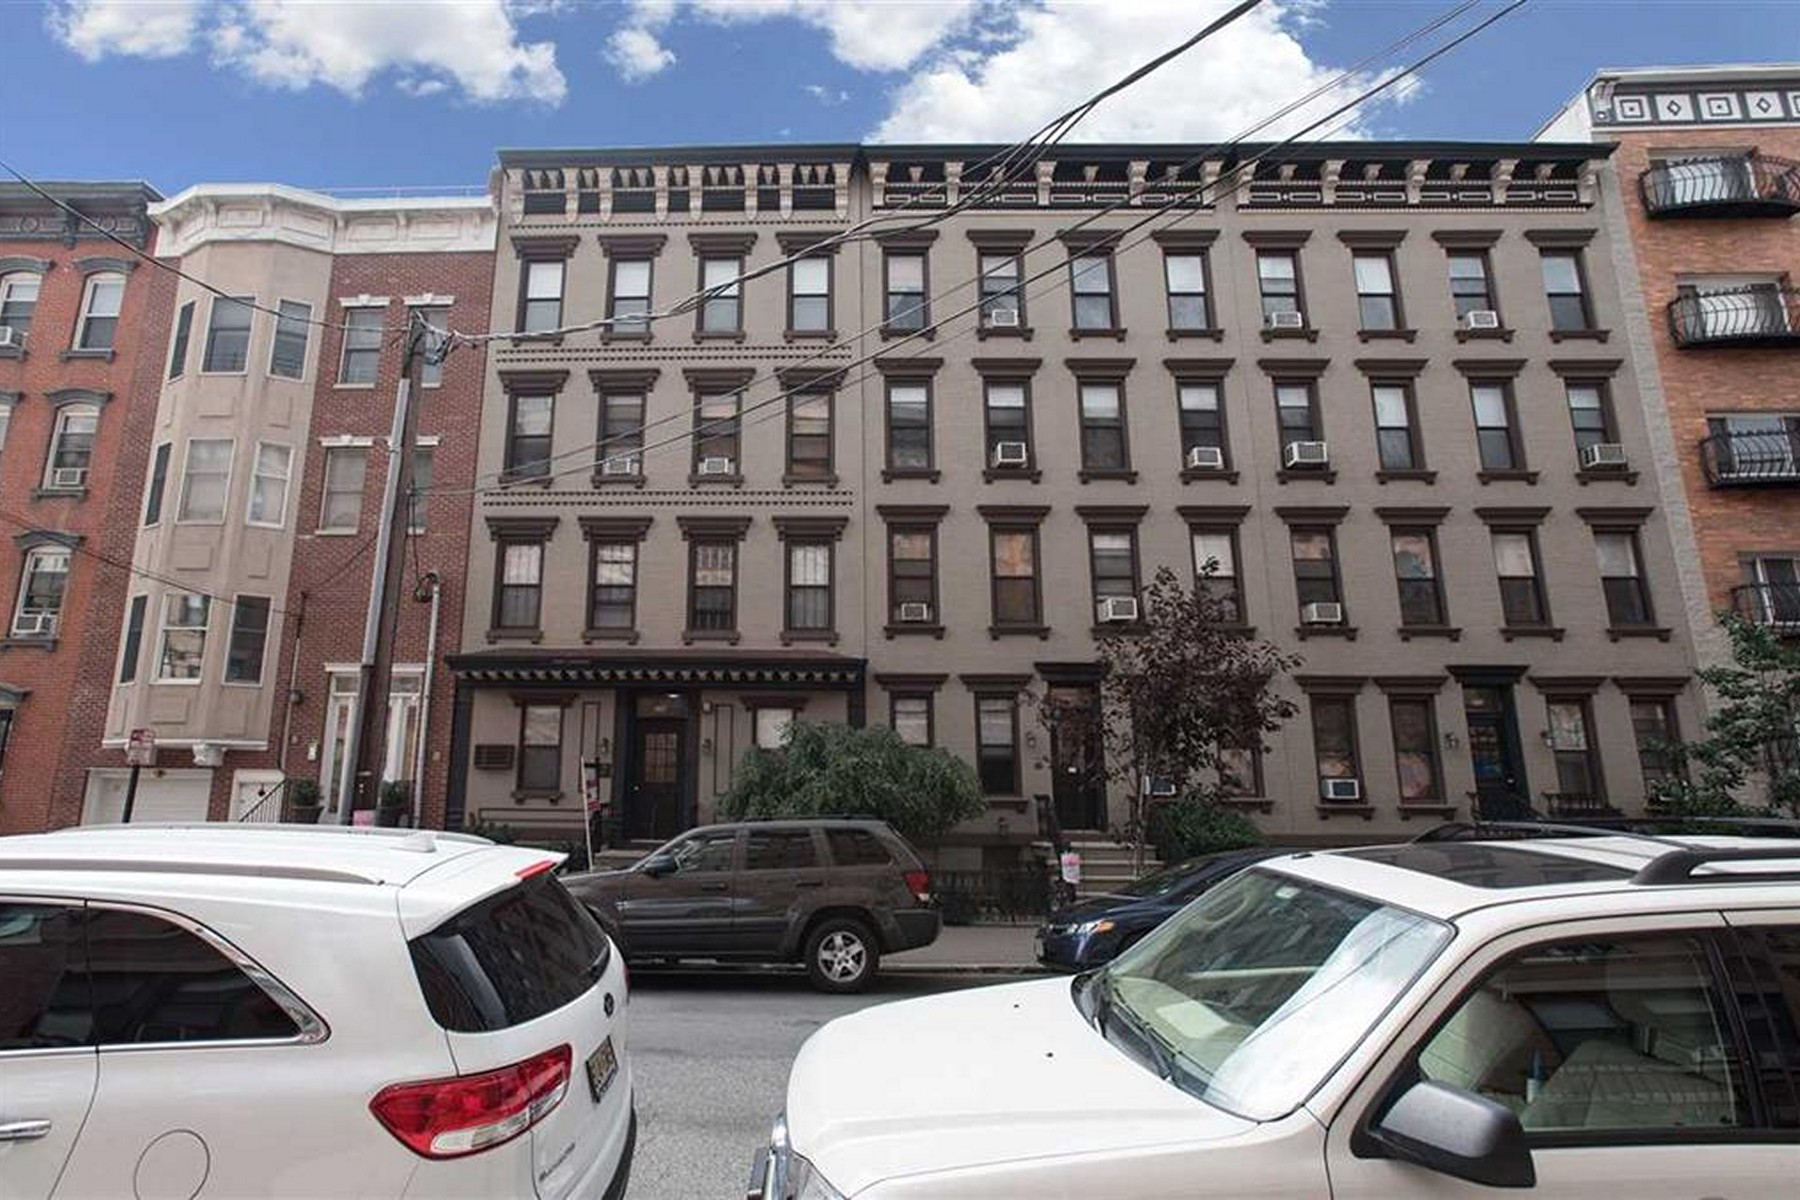 Condominiums للـ Sale في Super Clean Sunny One bed/one bath on tree lined Willow Avenue. 208 Willow Ave #305, Hoboken, New Jersey 07030 United States